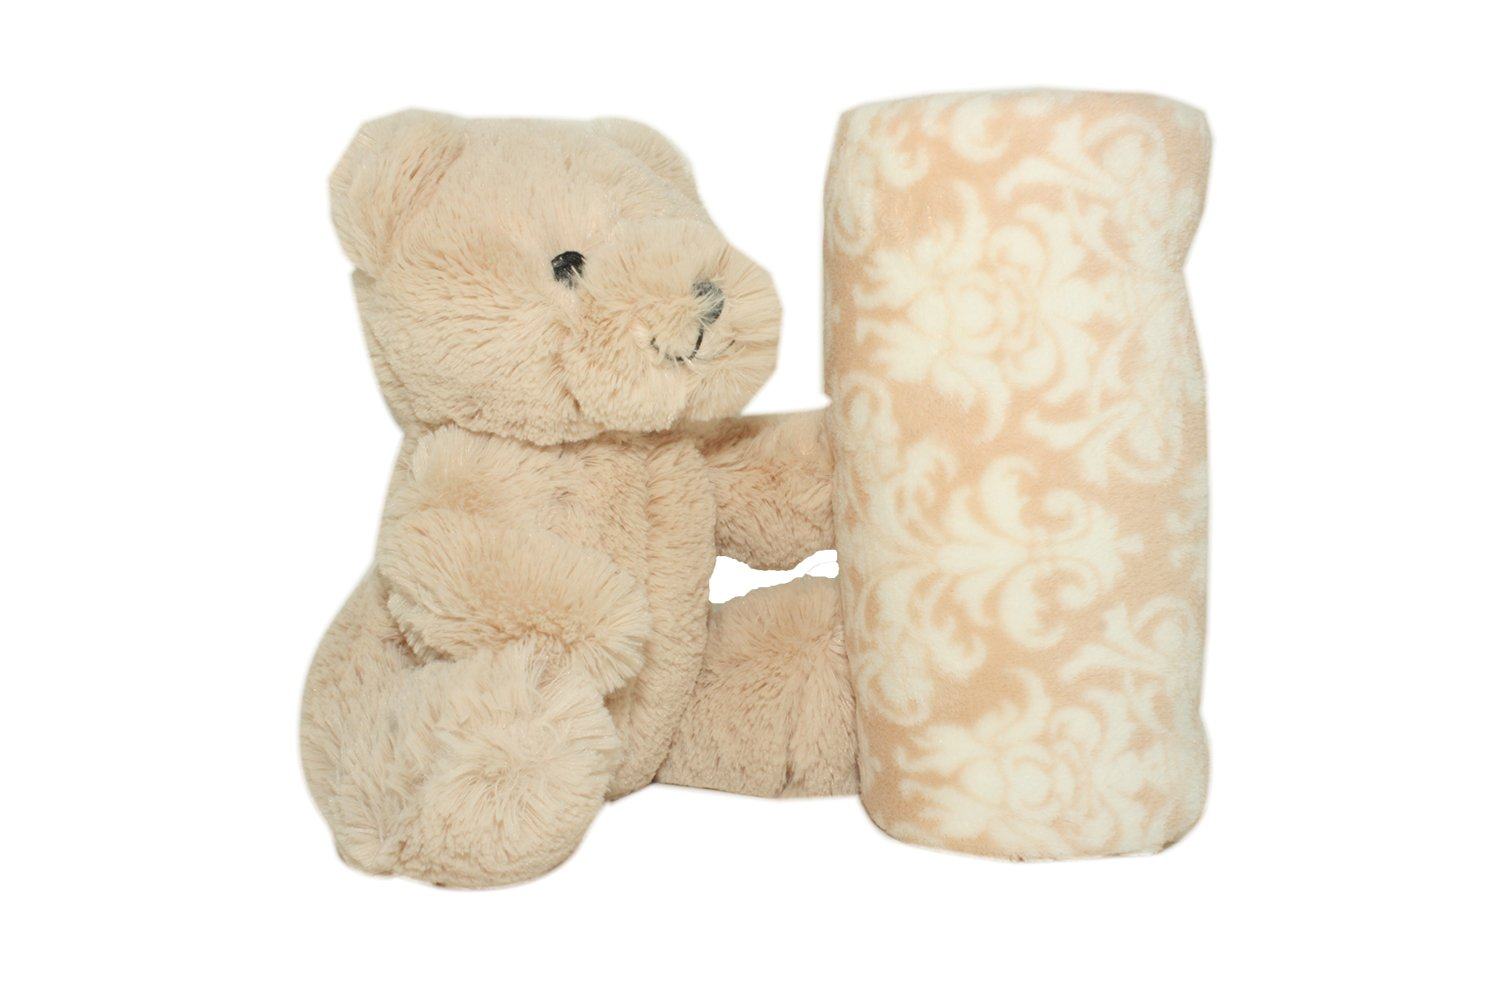 SILVER ONE Plush Stuffed Animal Teddy Bear and Blanket 2 Peice Gift Set for Kids/Children | 40'' x 50'' Soft Plush Throw | Get Well Gift